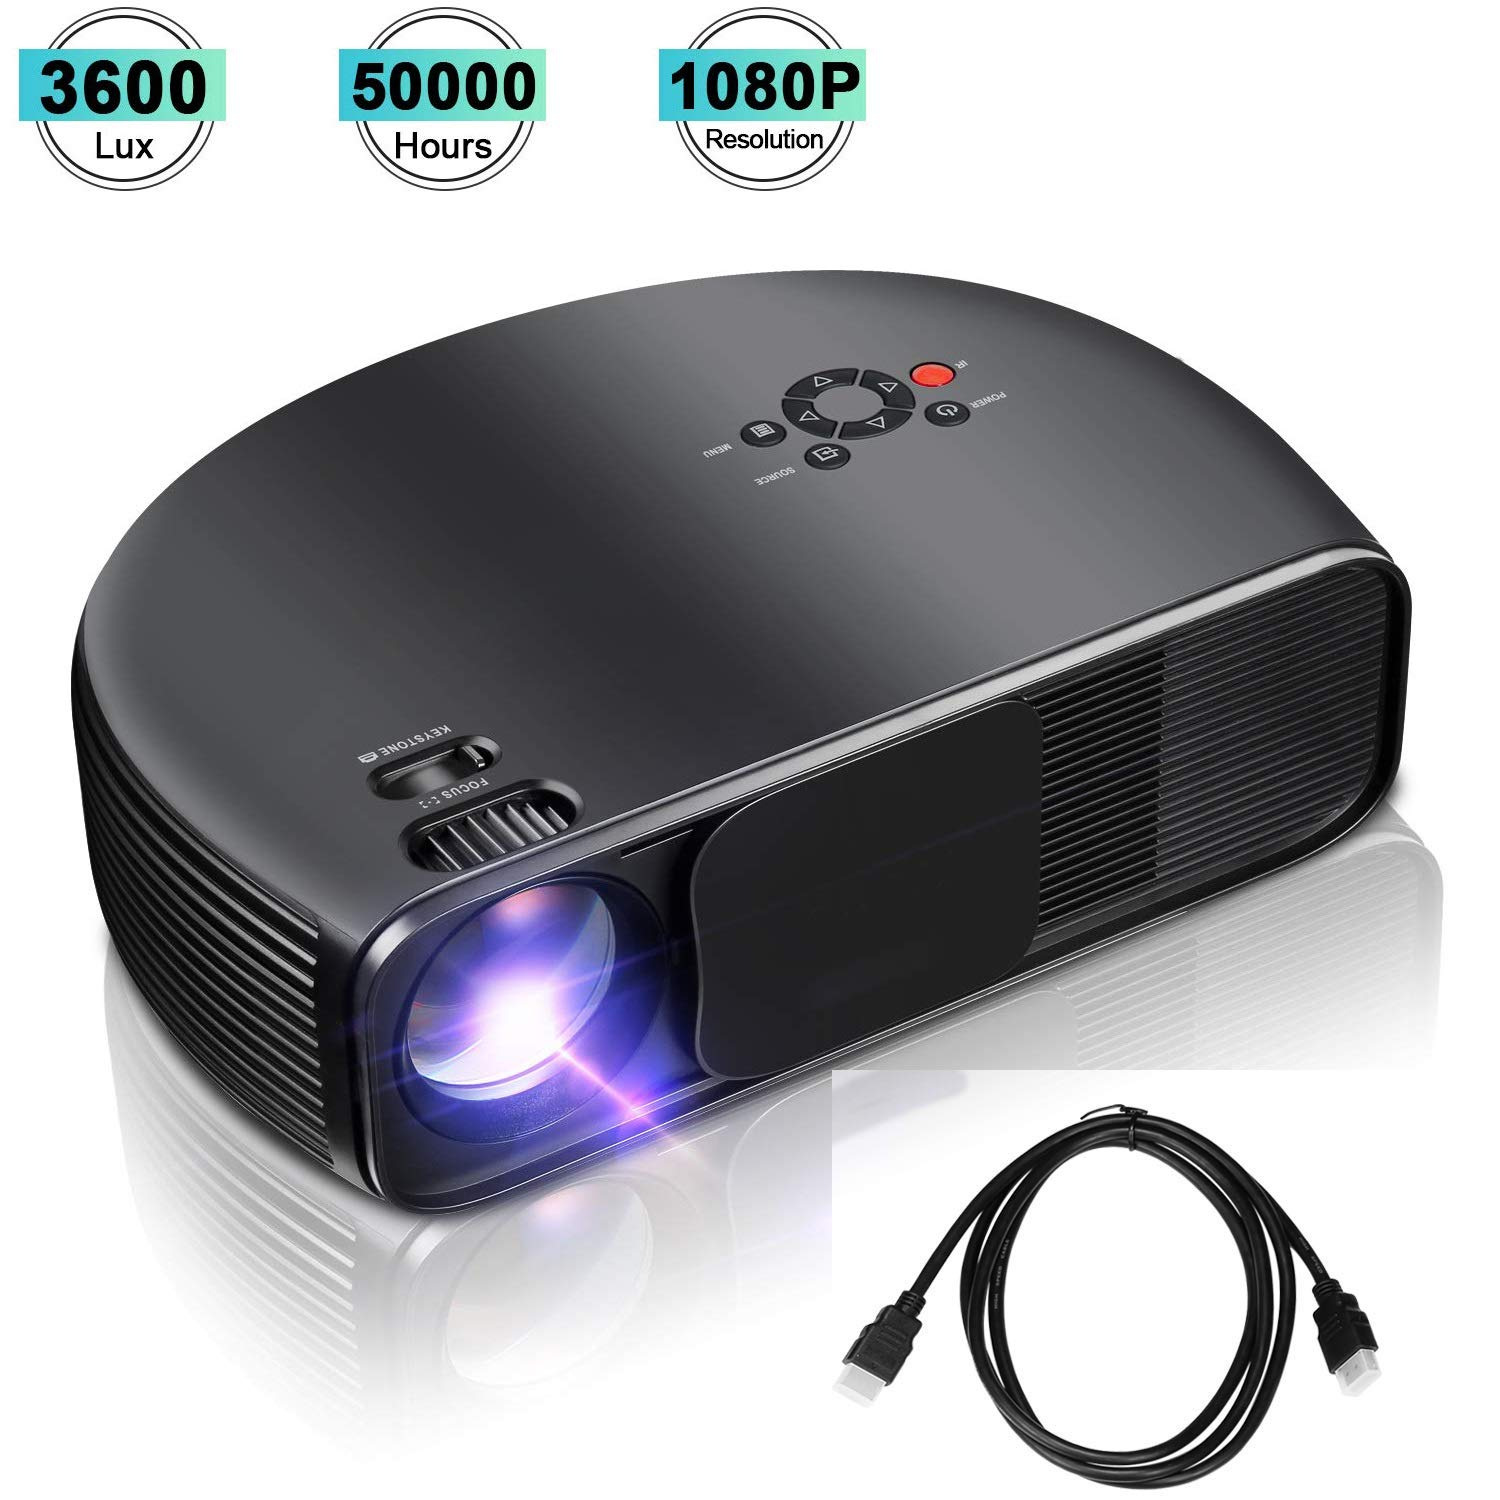 XINHUANG Proyector, Video proyector 3600Lux, proyector Full HD con ...